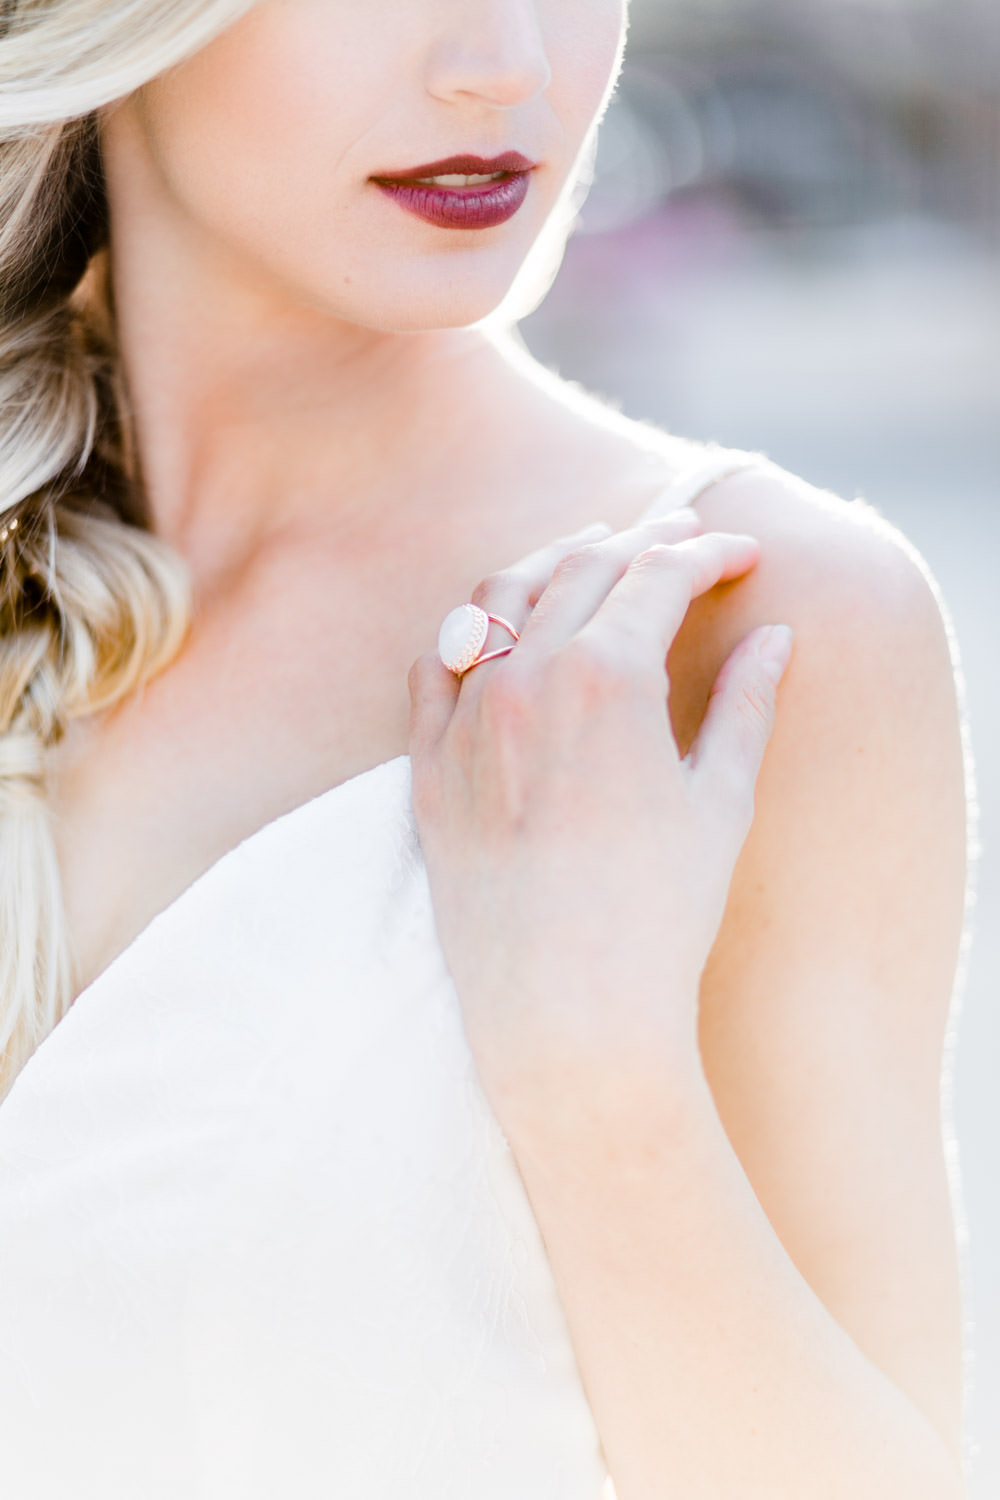 Bridal bold lip and rose gold moonstone ring for a Vizcaya Museum wedding, Cavin Elizabeth Photography